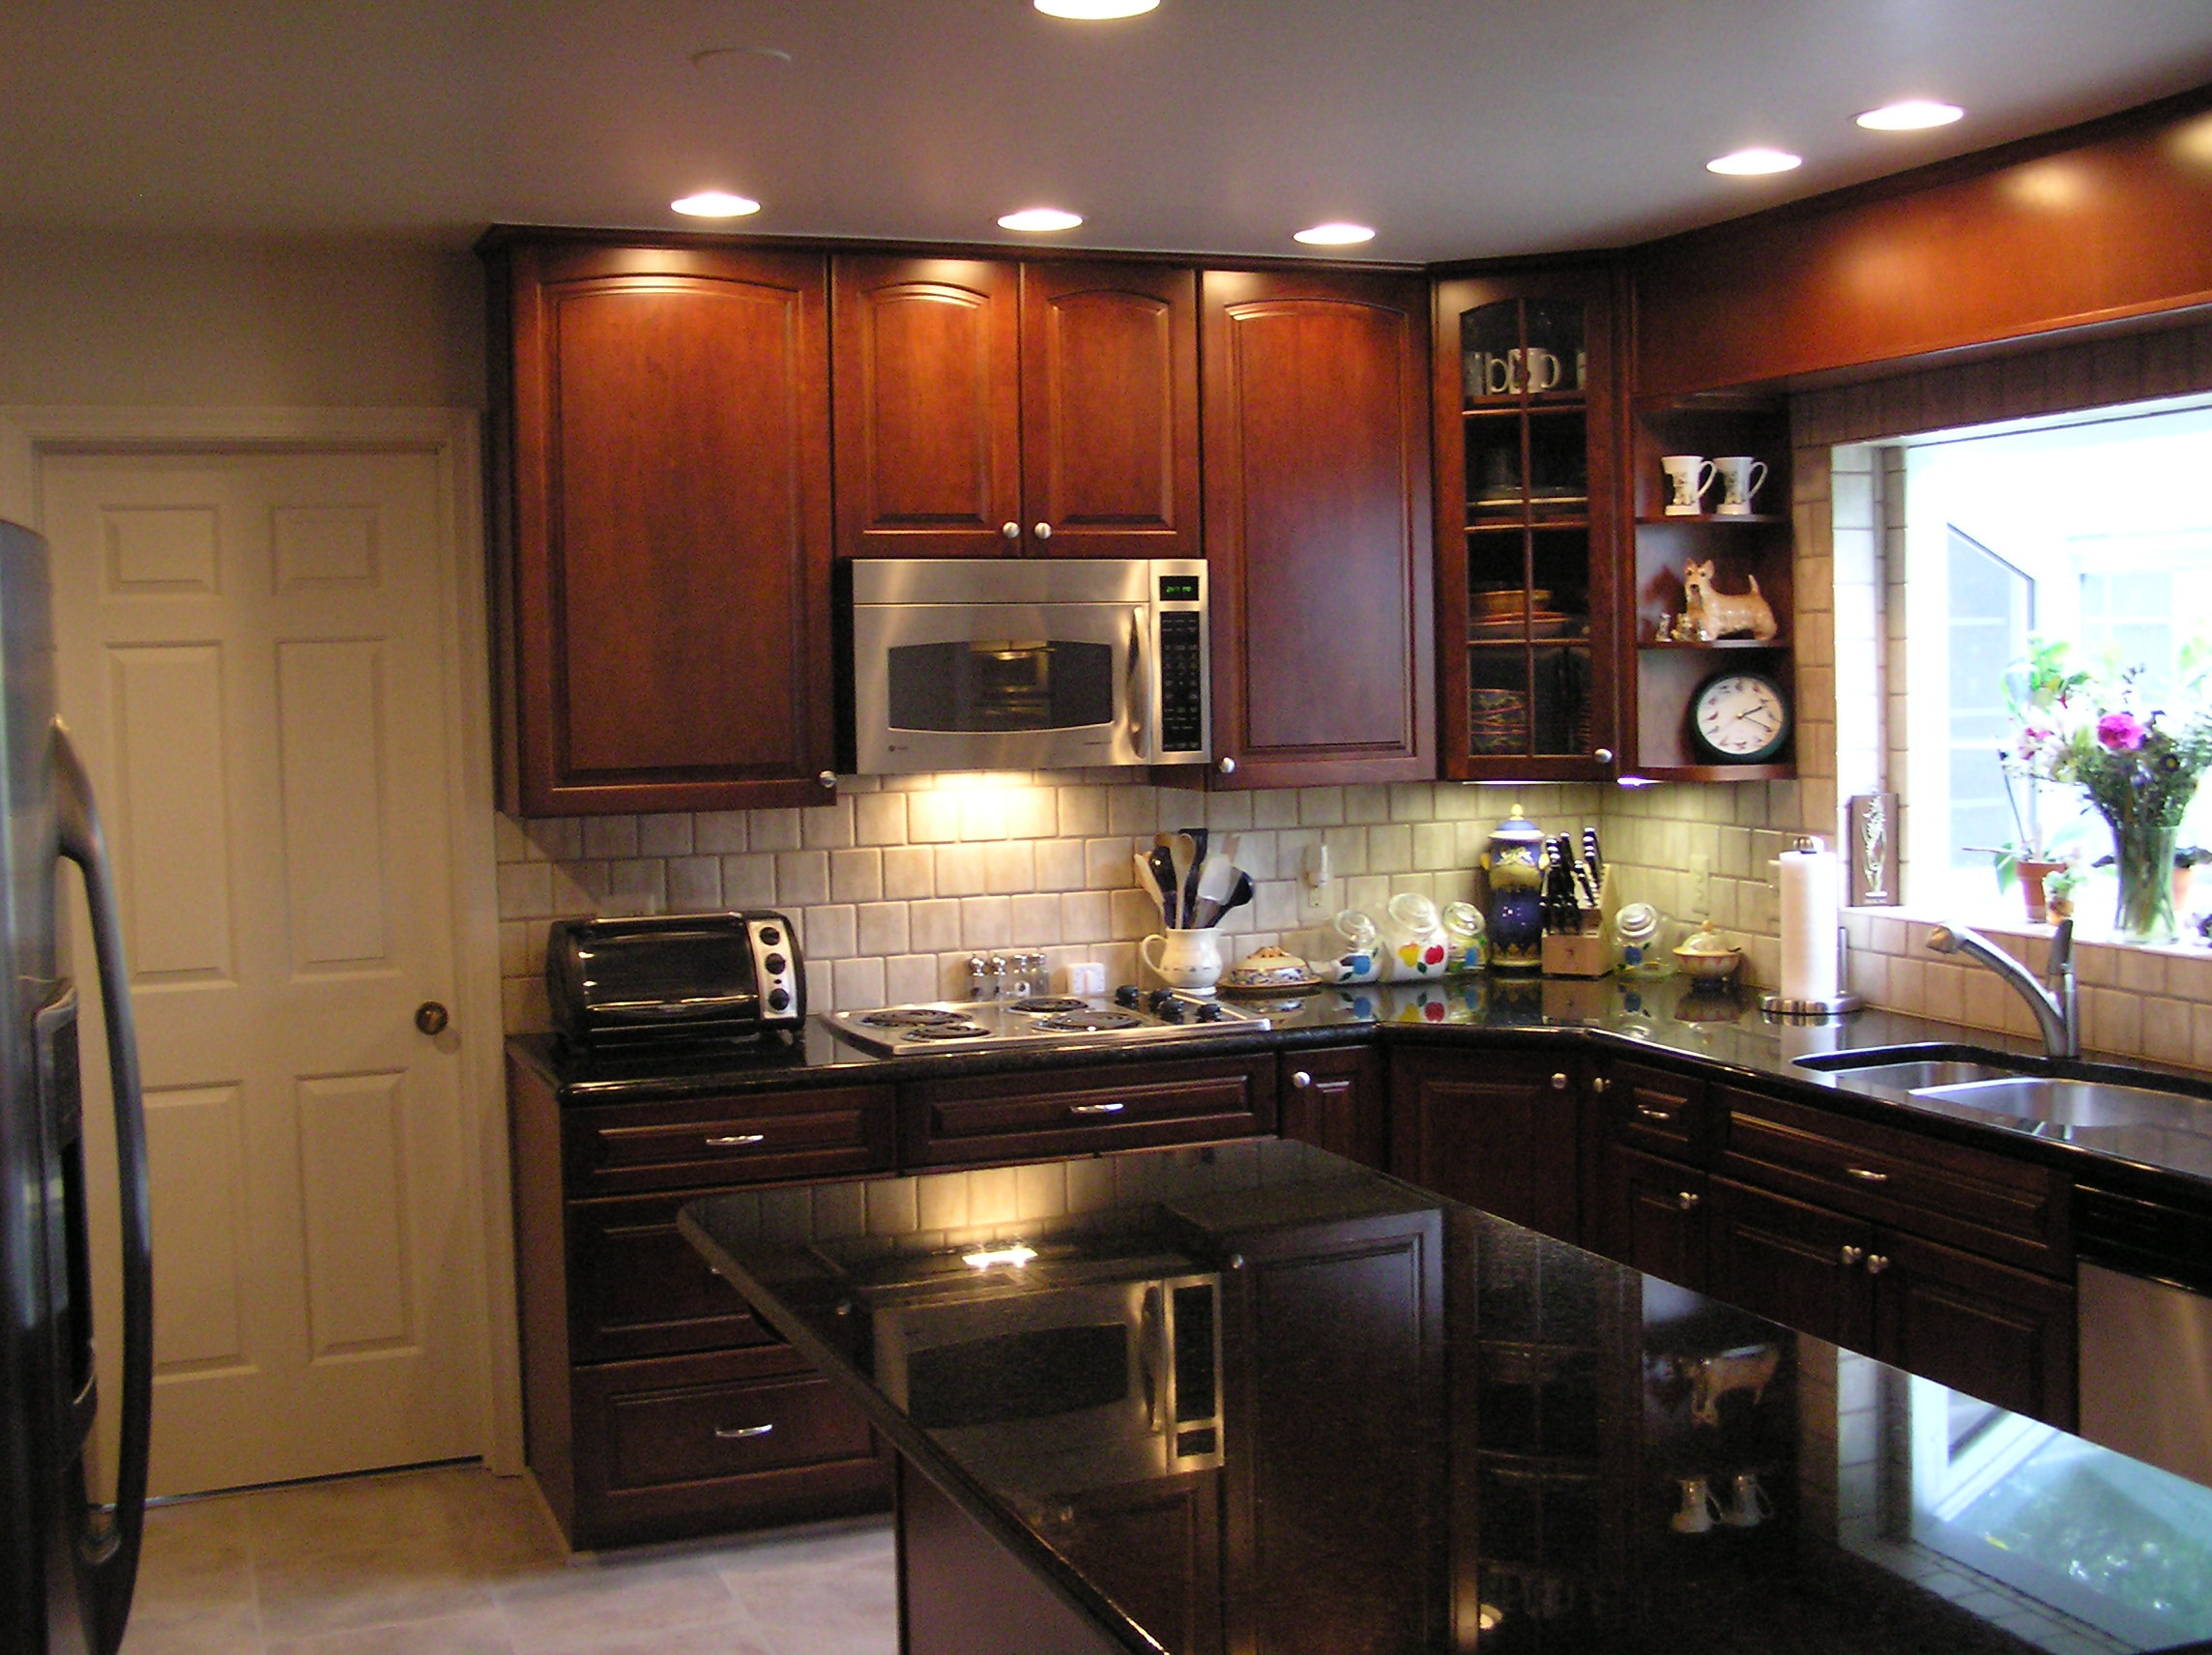 Best ideas about Remodeling Kitchen Ideas . Save or Pin Small Kitchen Remodel Ideas Now.